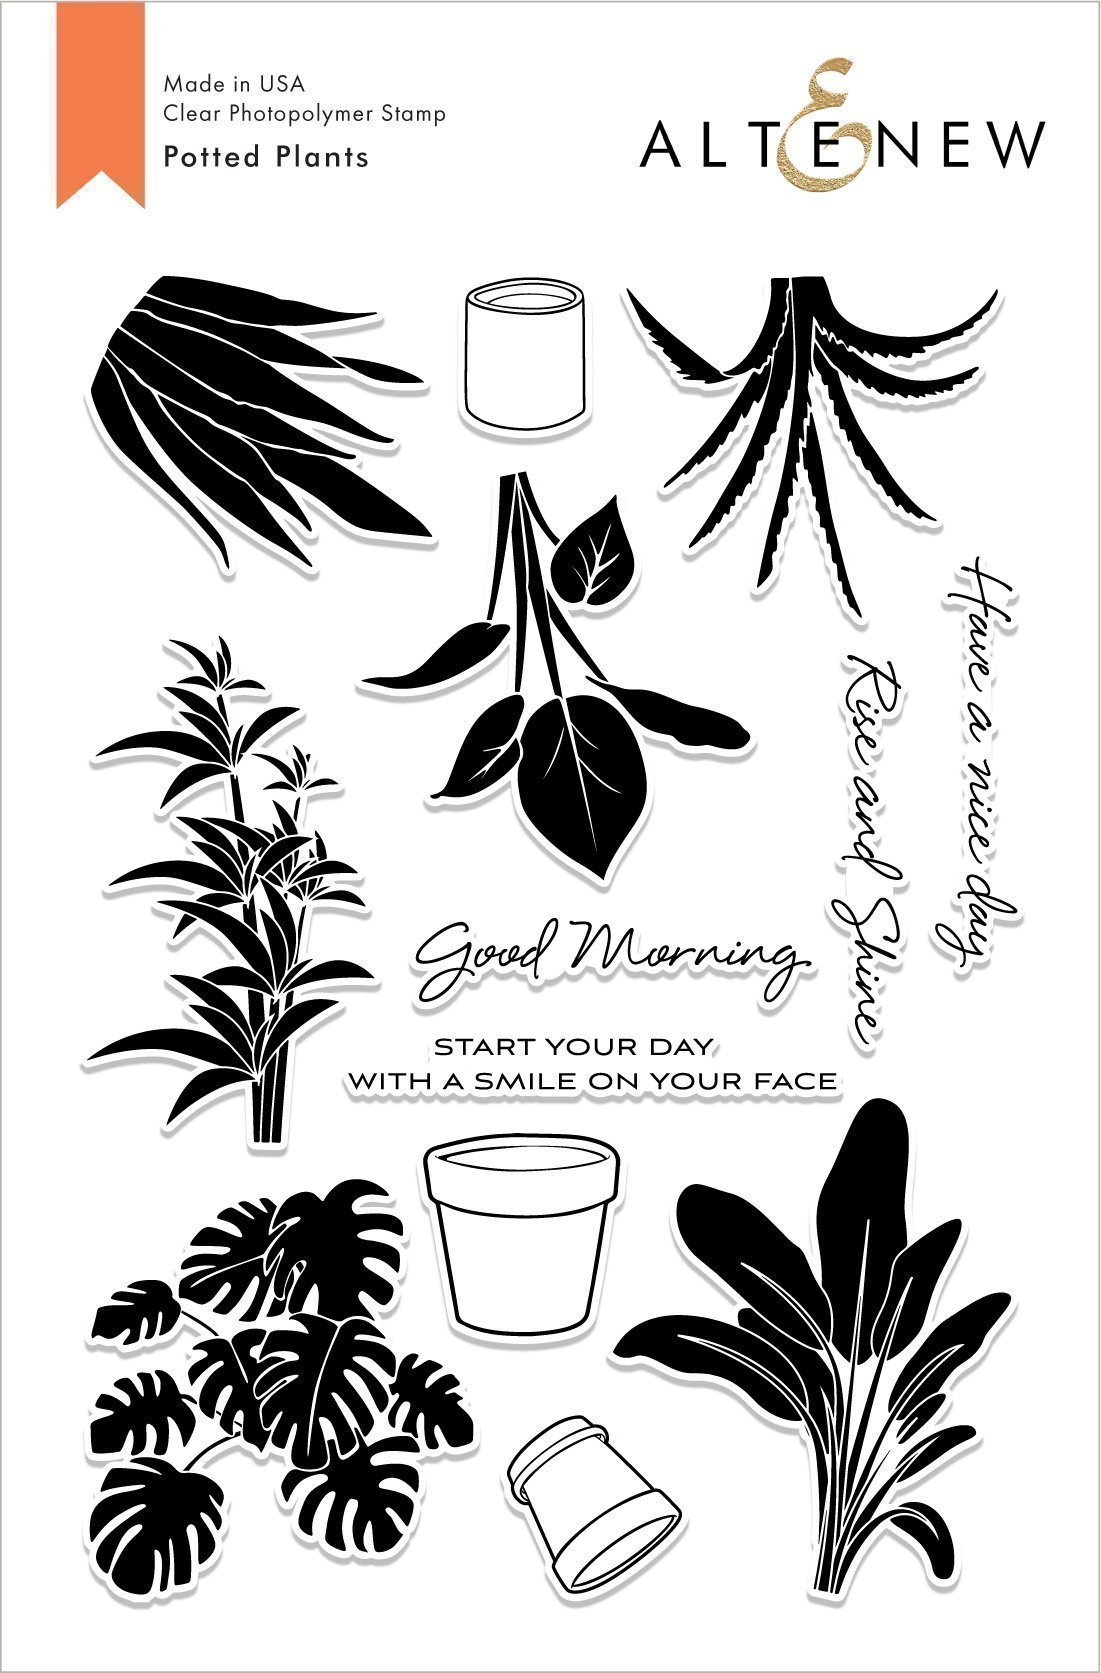 Altenew - Potted Plants Stamp Set